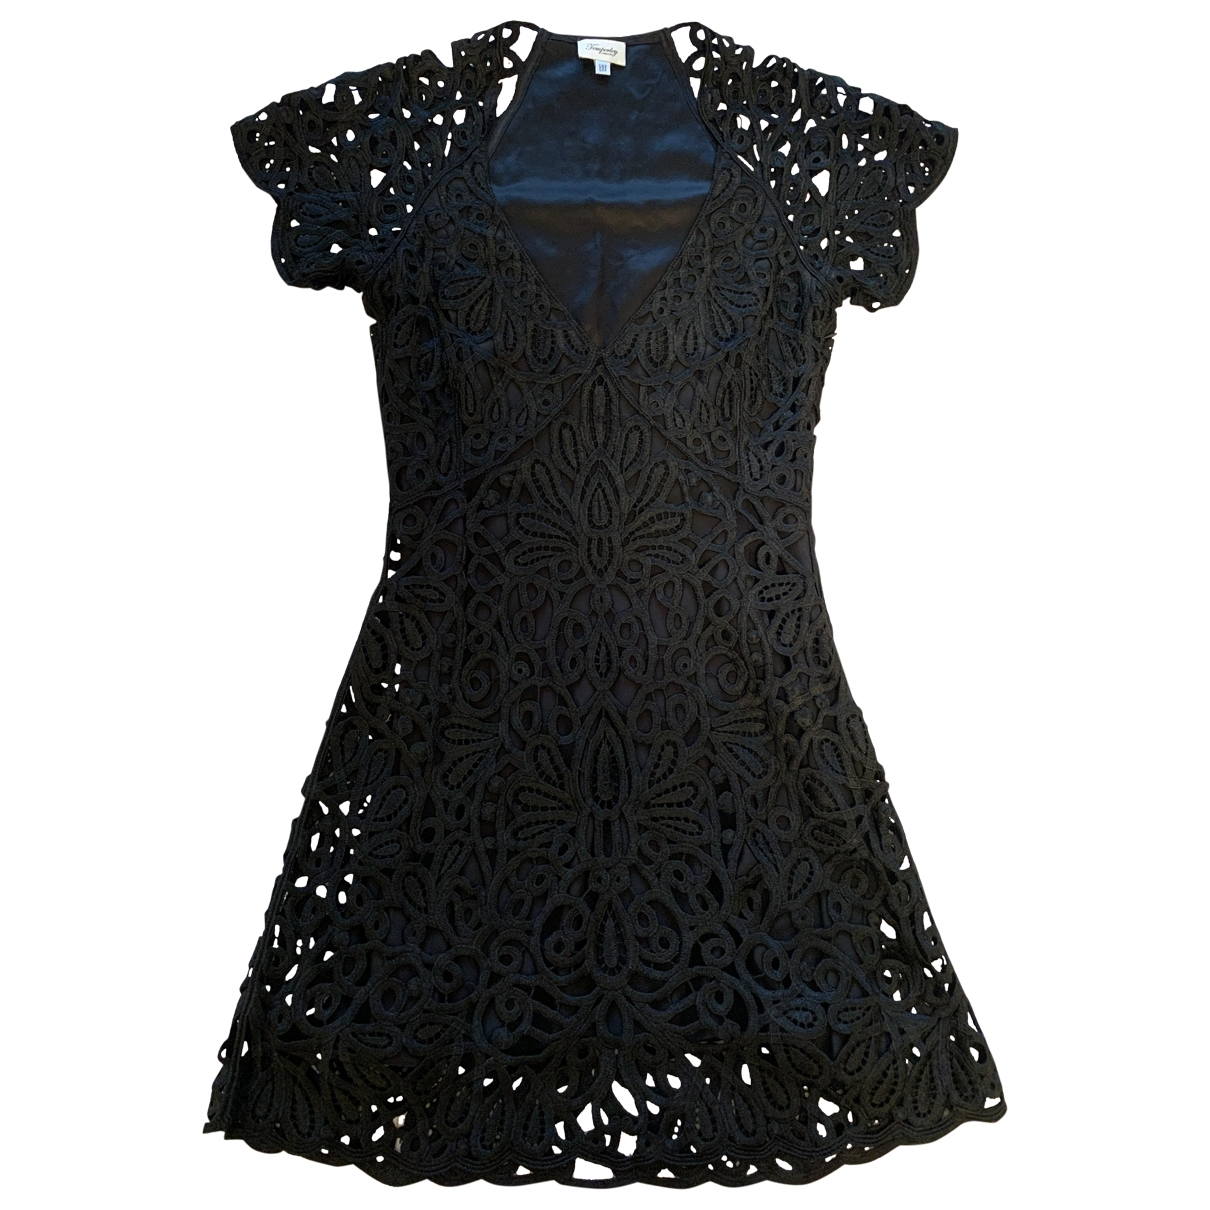 Temperley London \N Black Silk dress for Women 36 FR